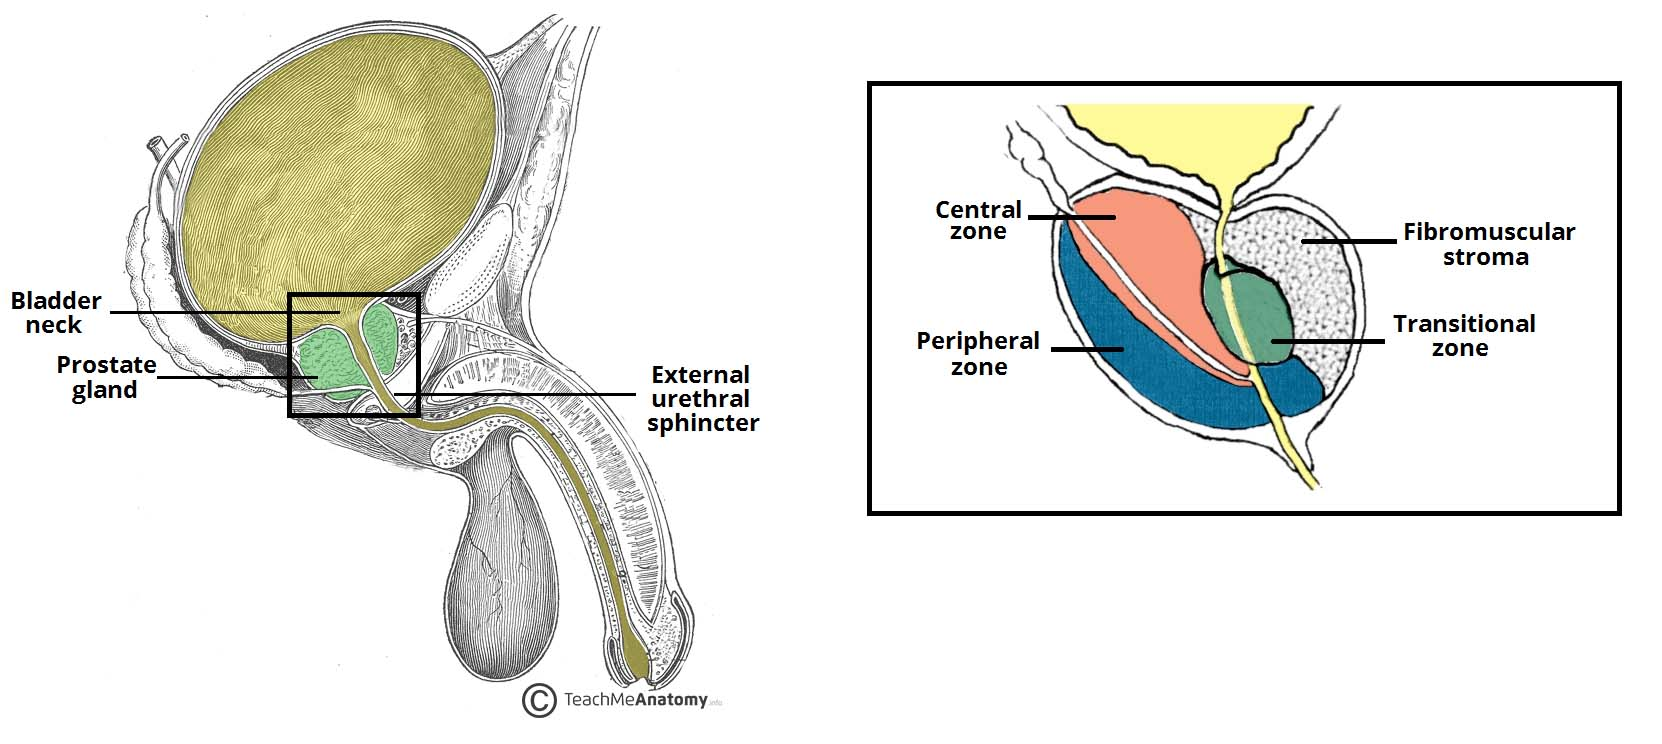 hight resolution of fig 2 the anatomical position and zones of the prostate